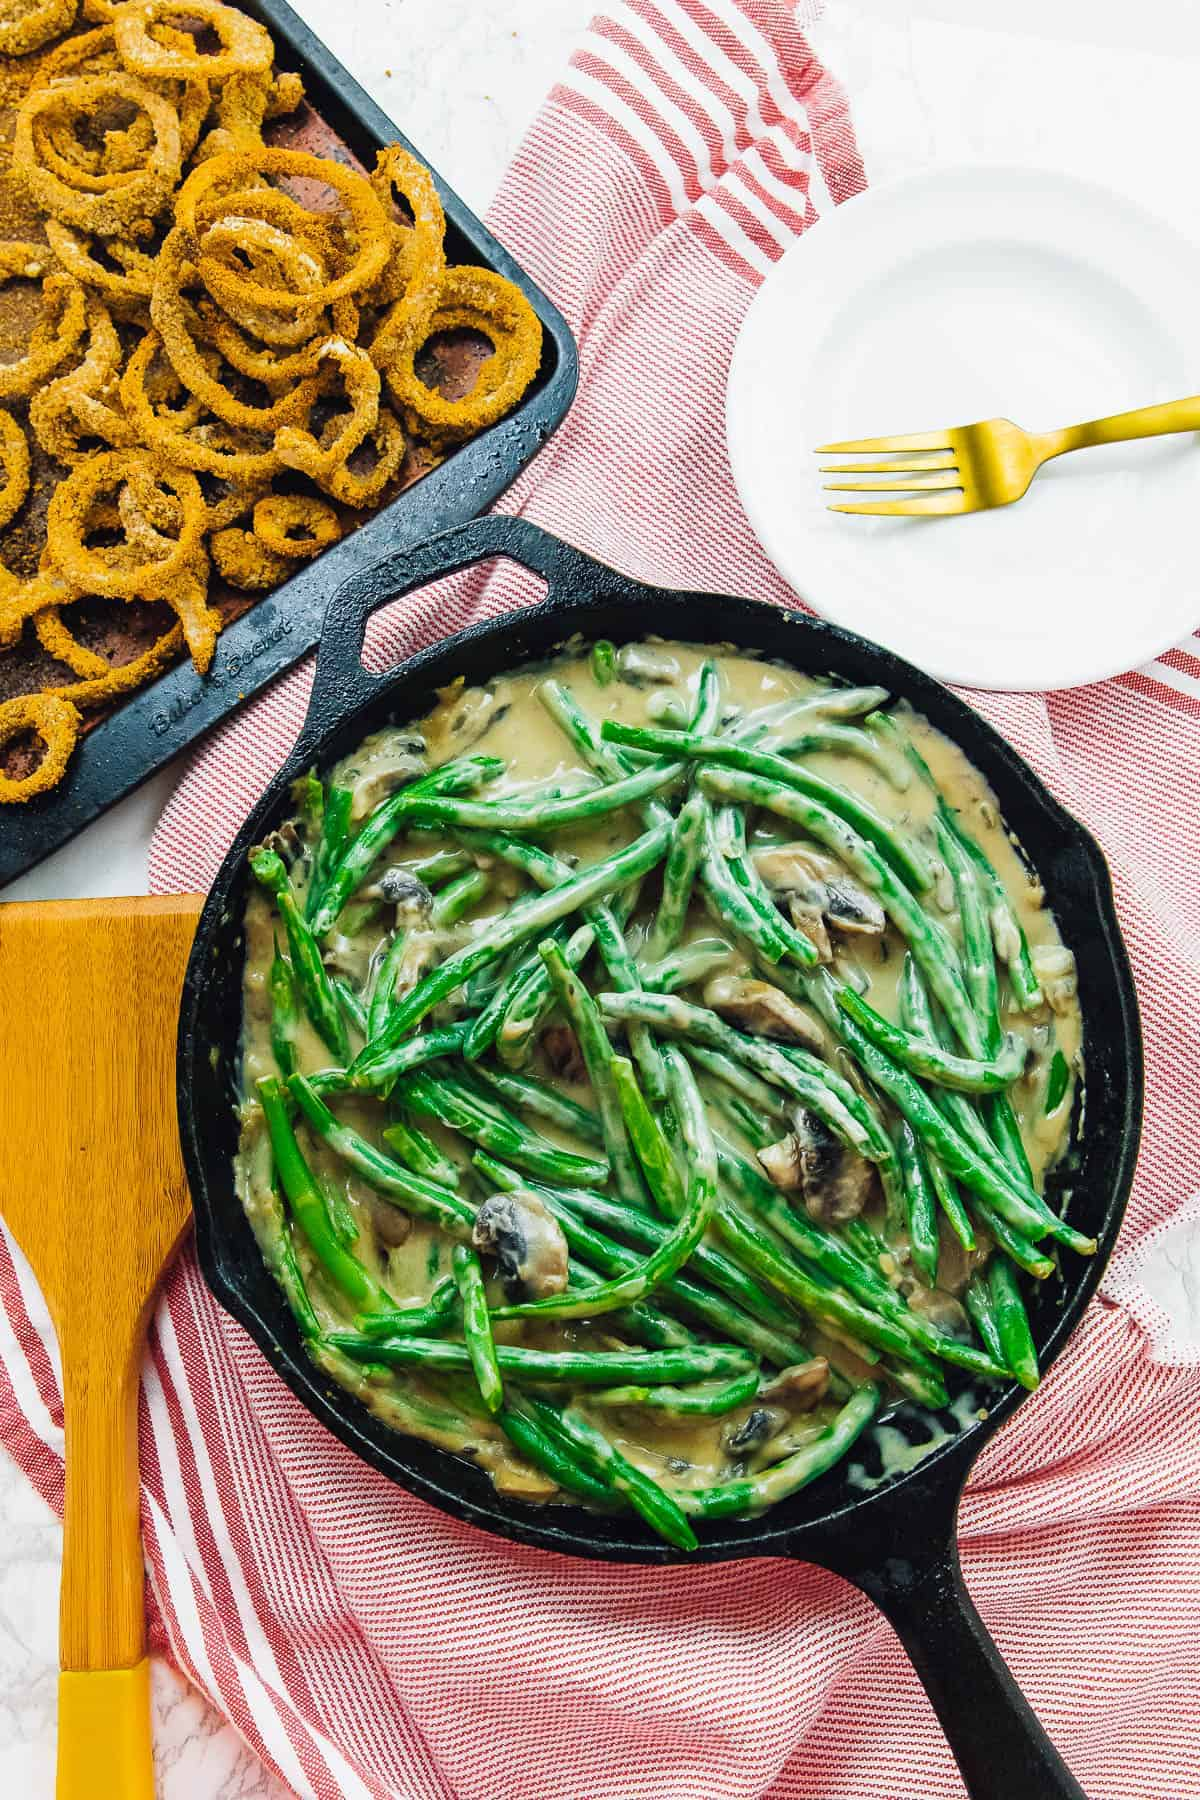 Green bean casserole ingredients cooked and arranged.